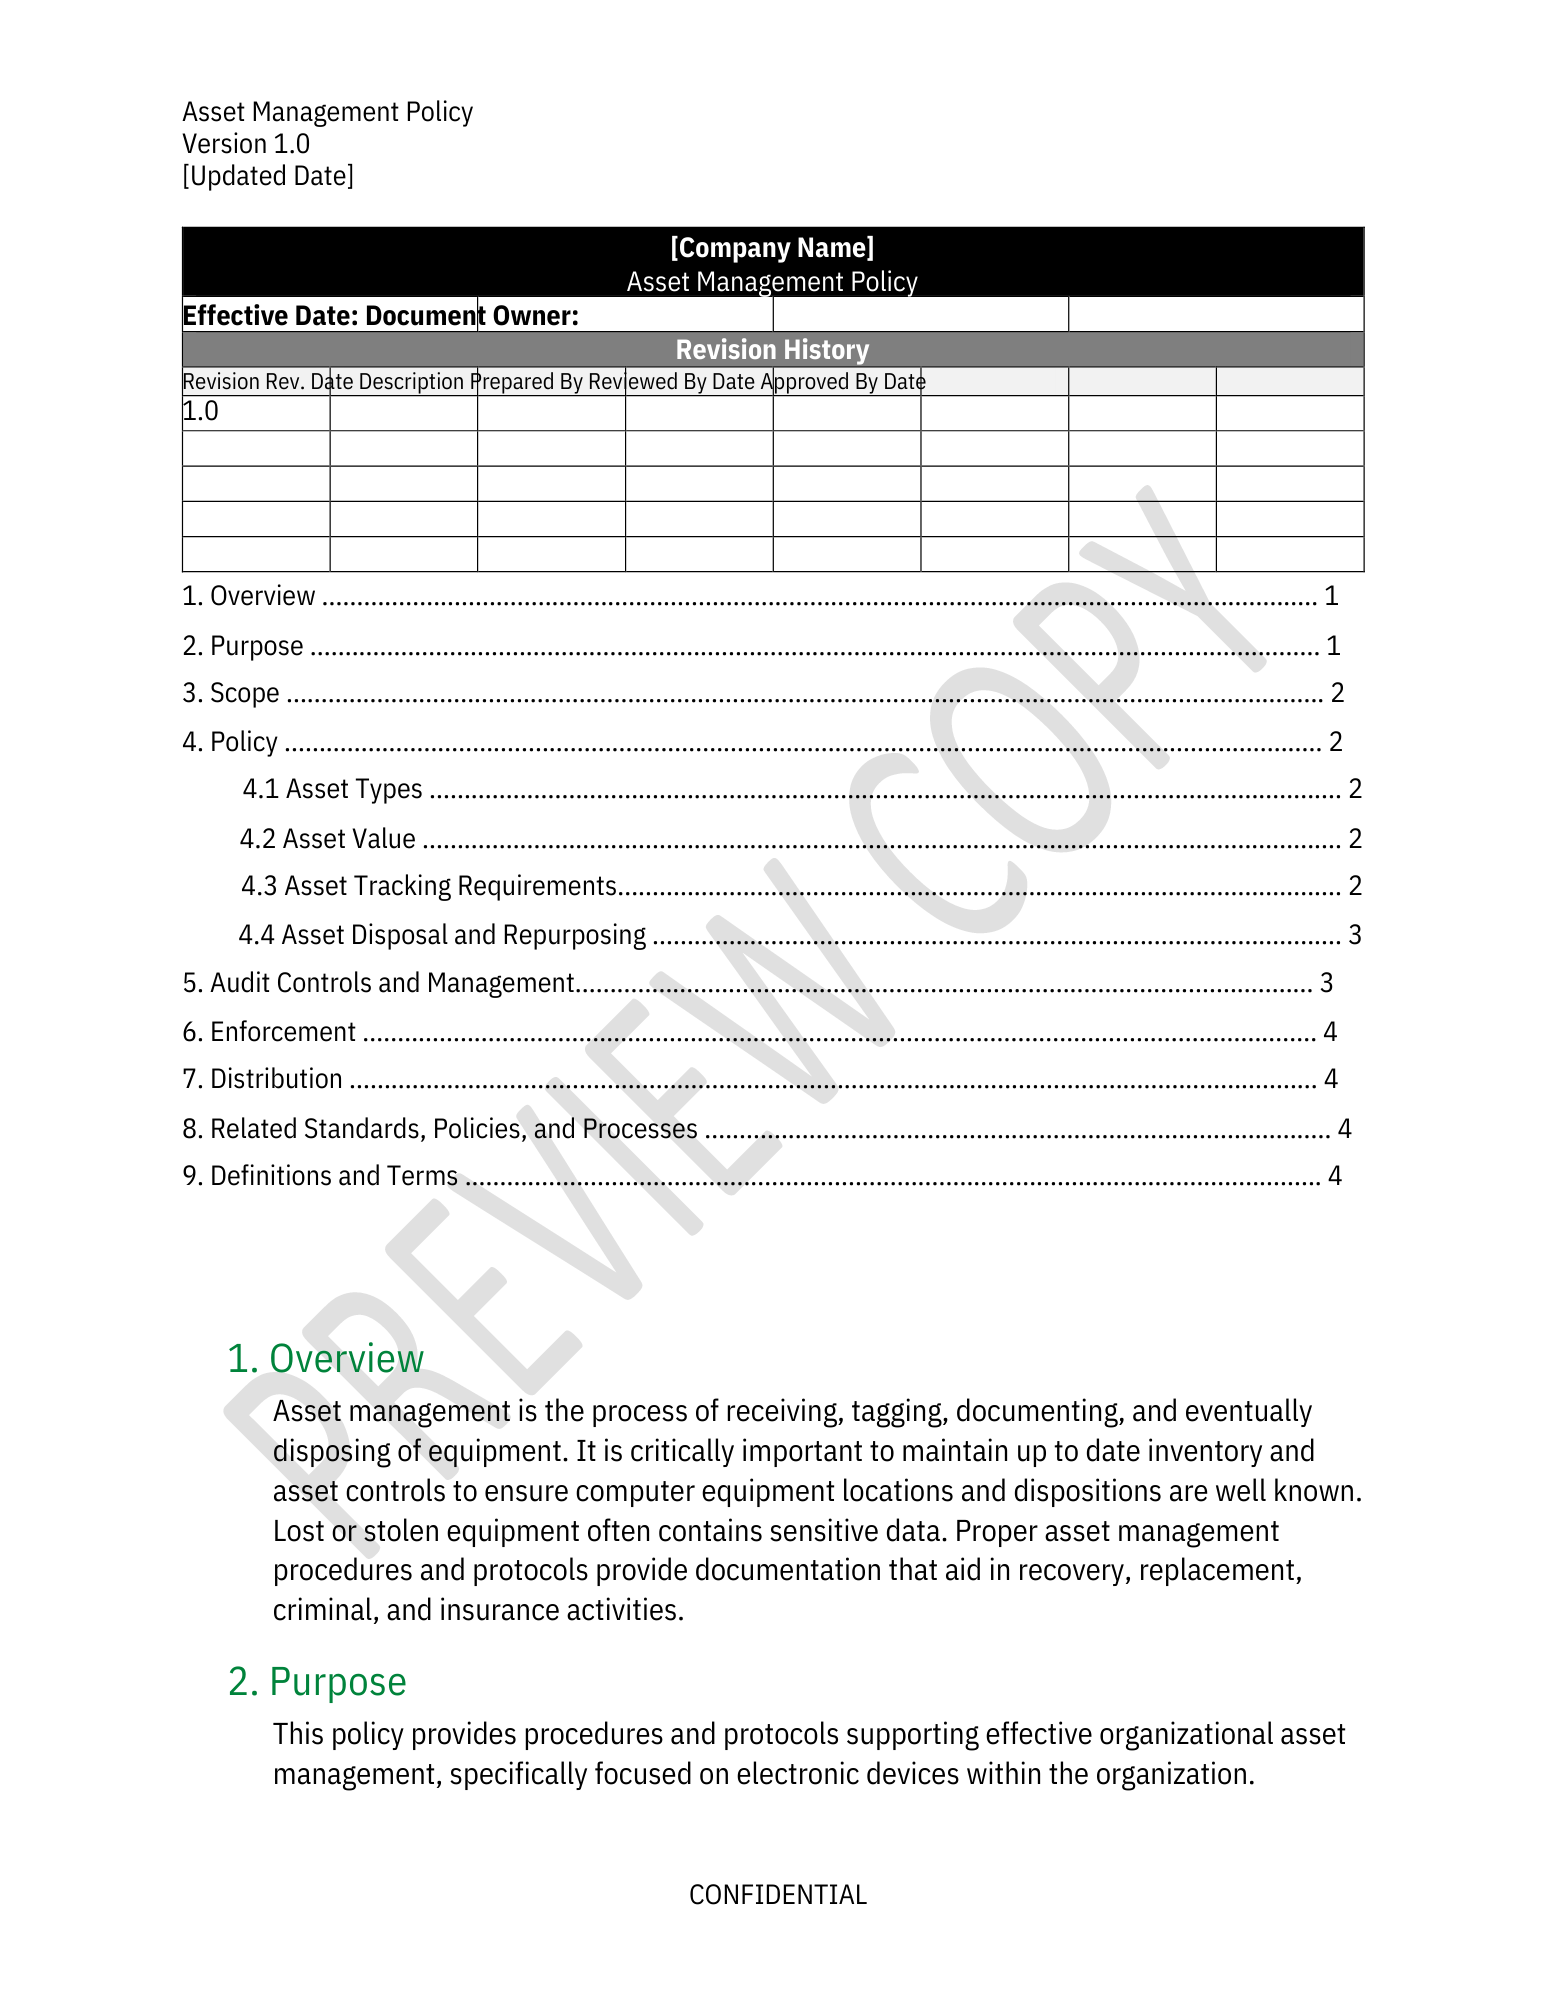 Asset-Management-Policy-Template-PREVIEW.pdf